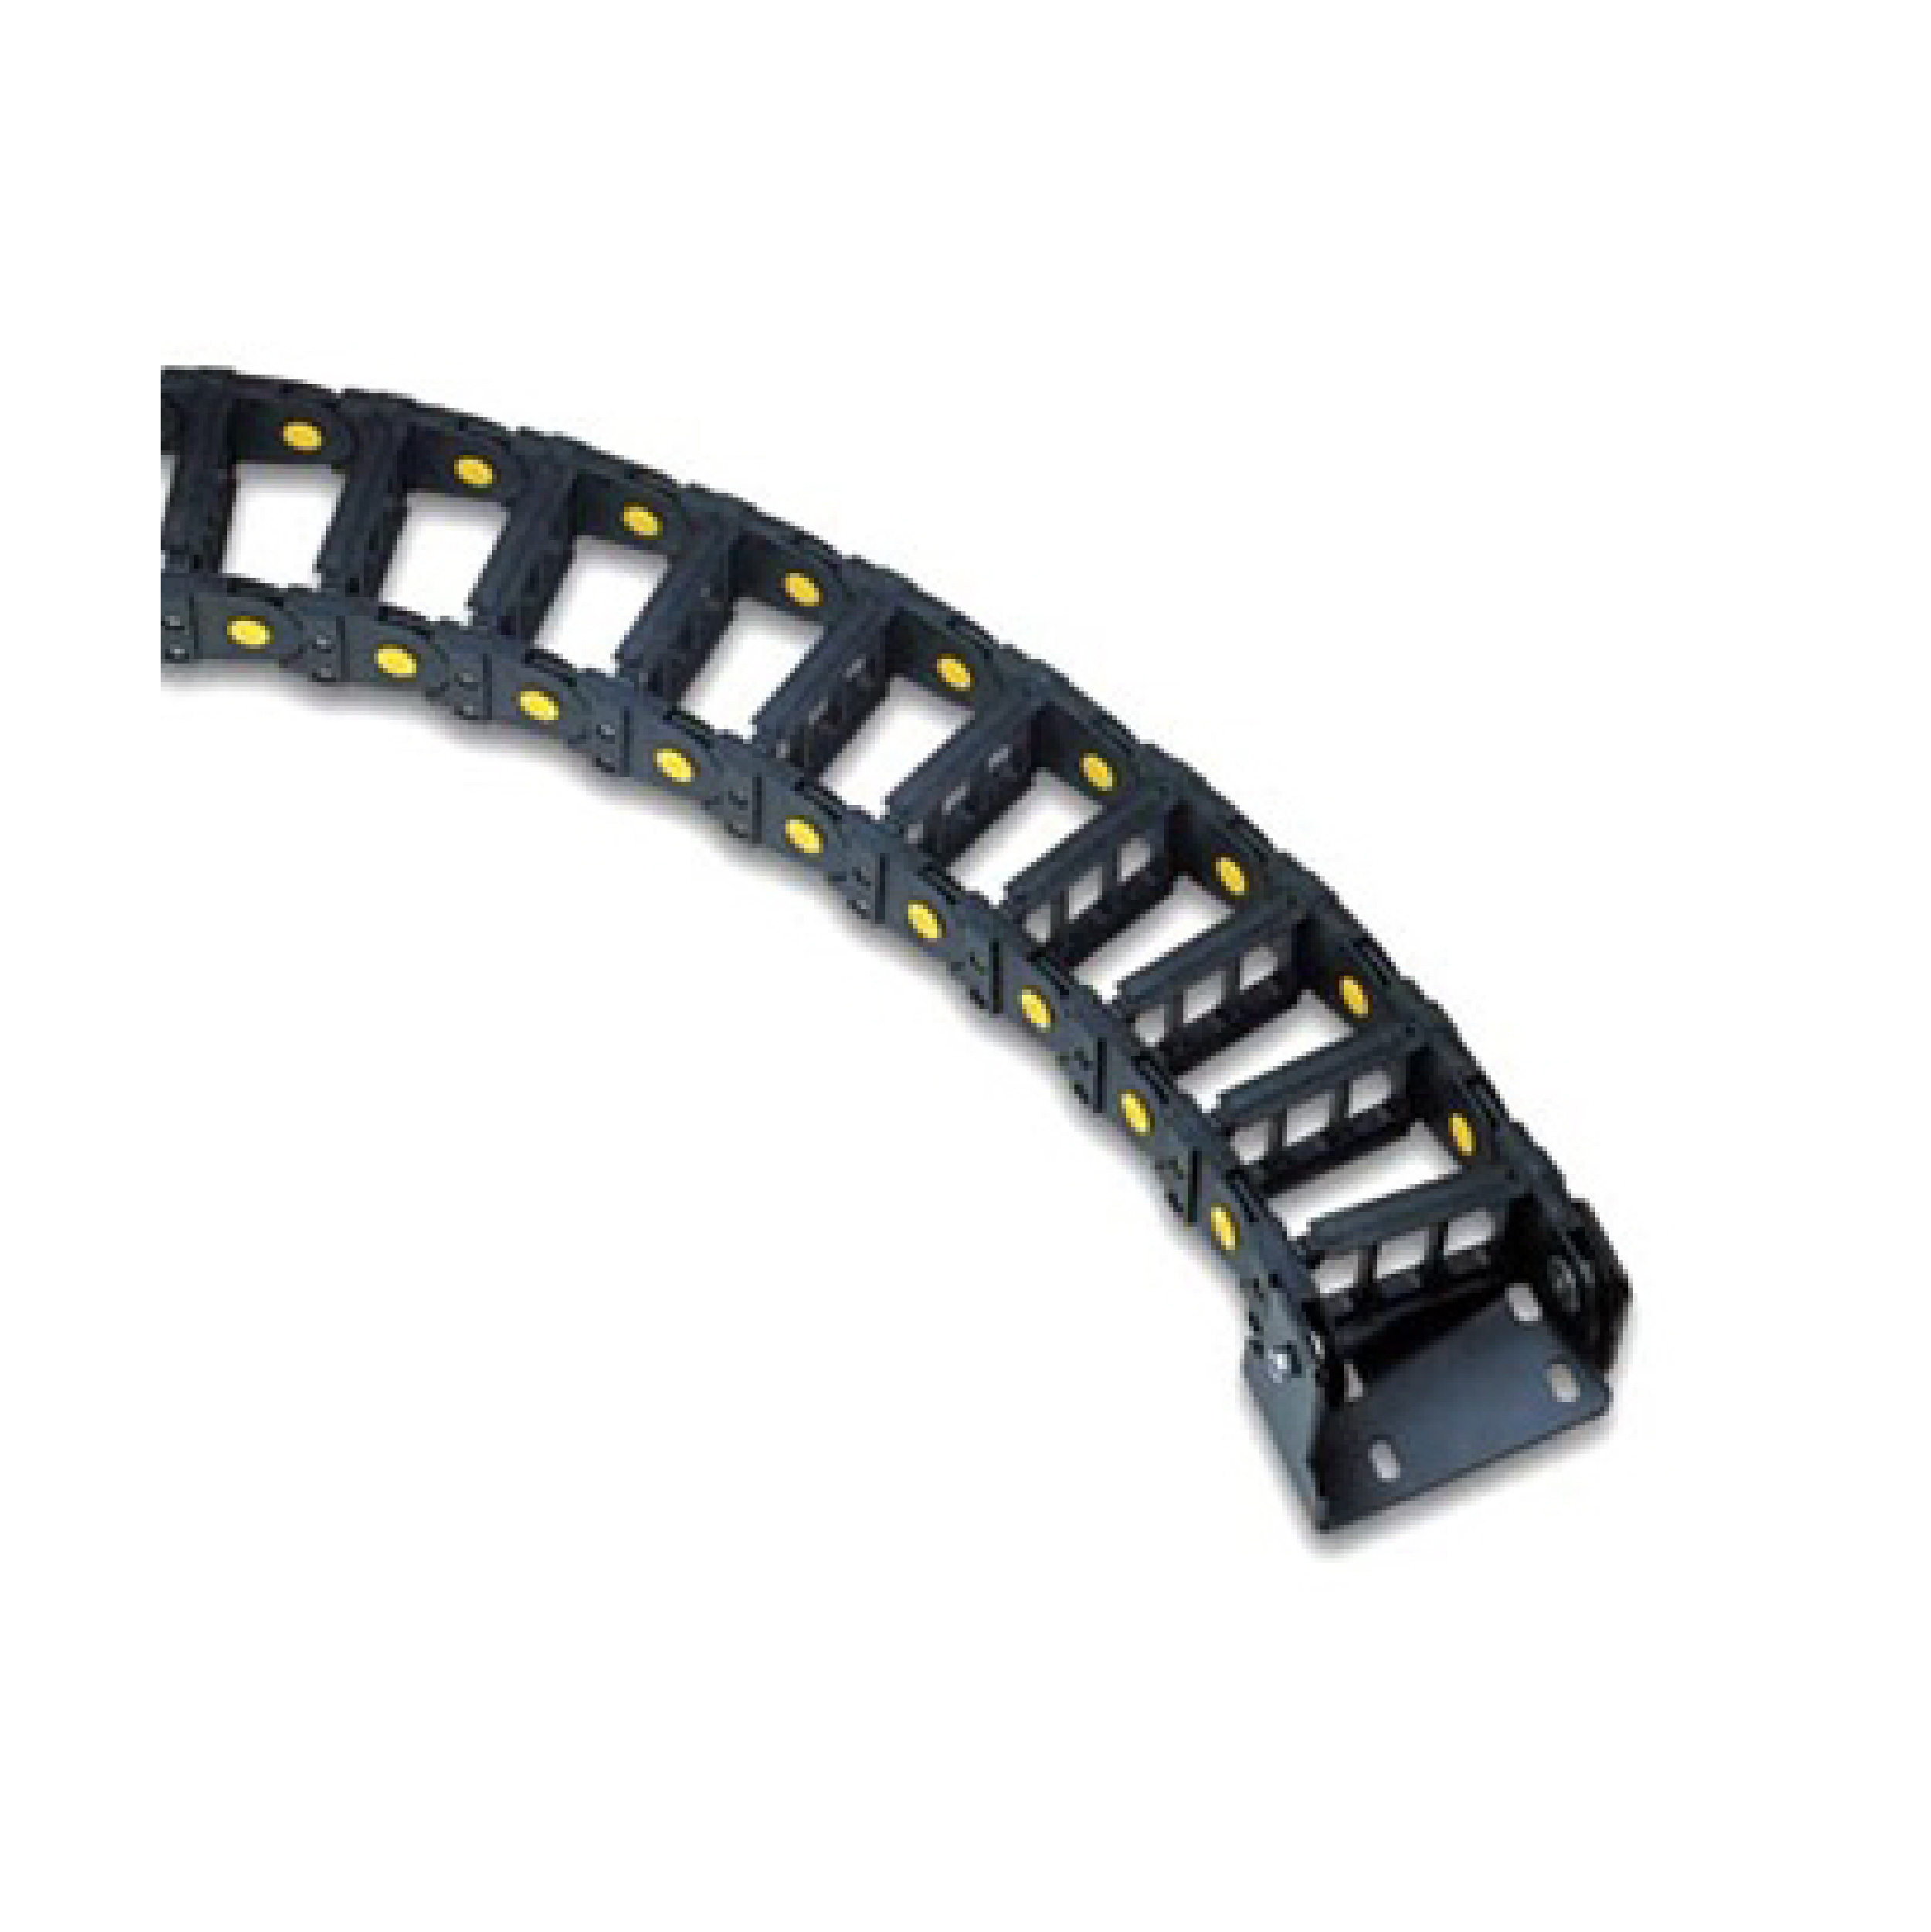 Cable Chains For Robotics/Robot Series